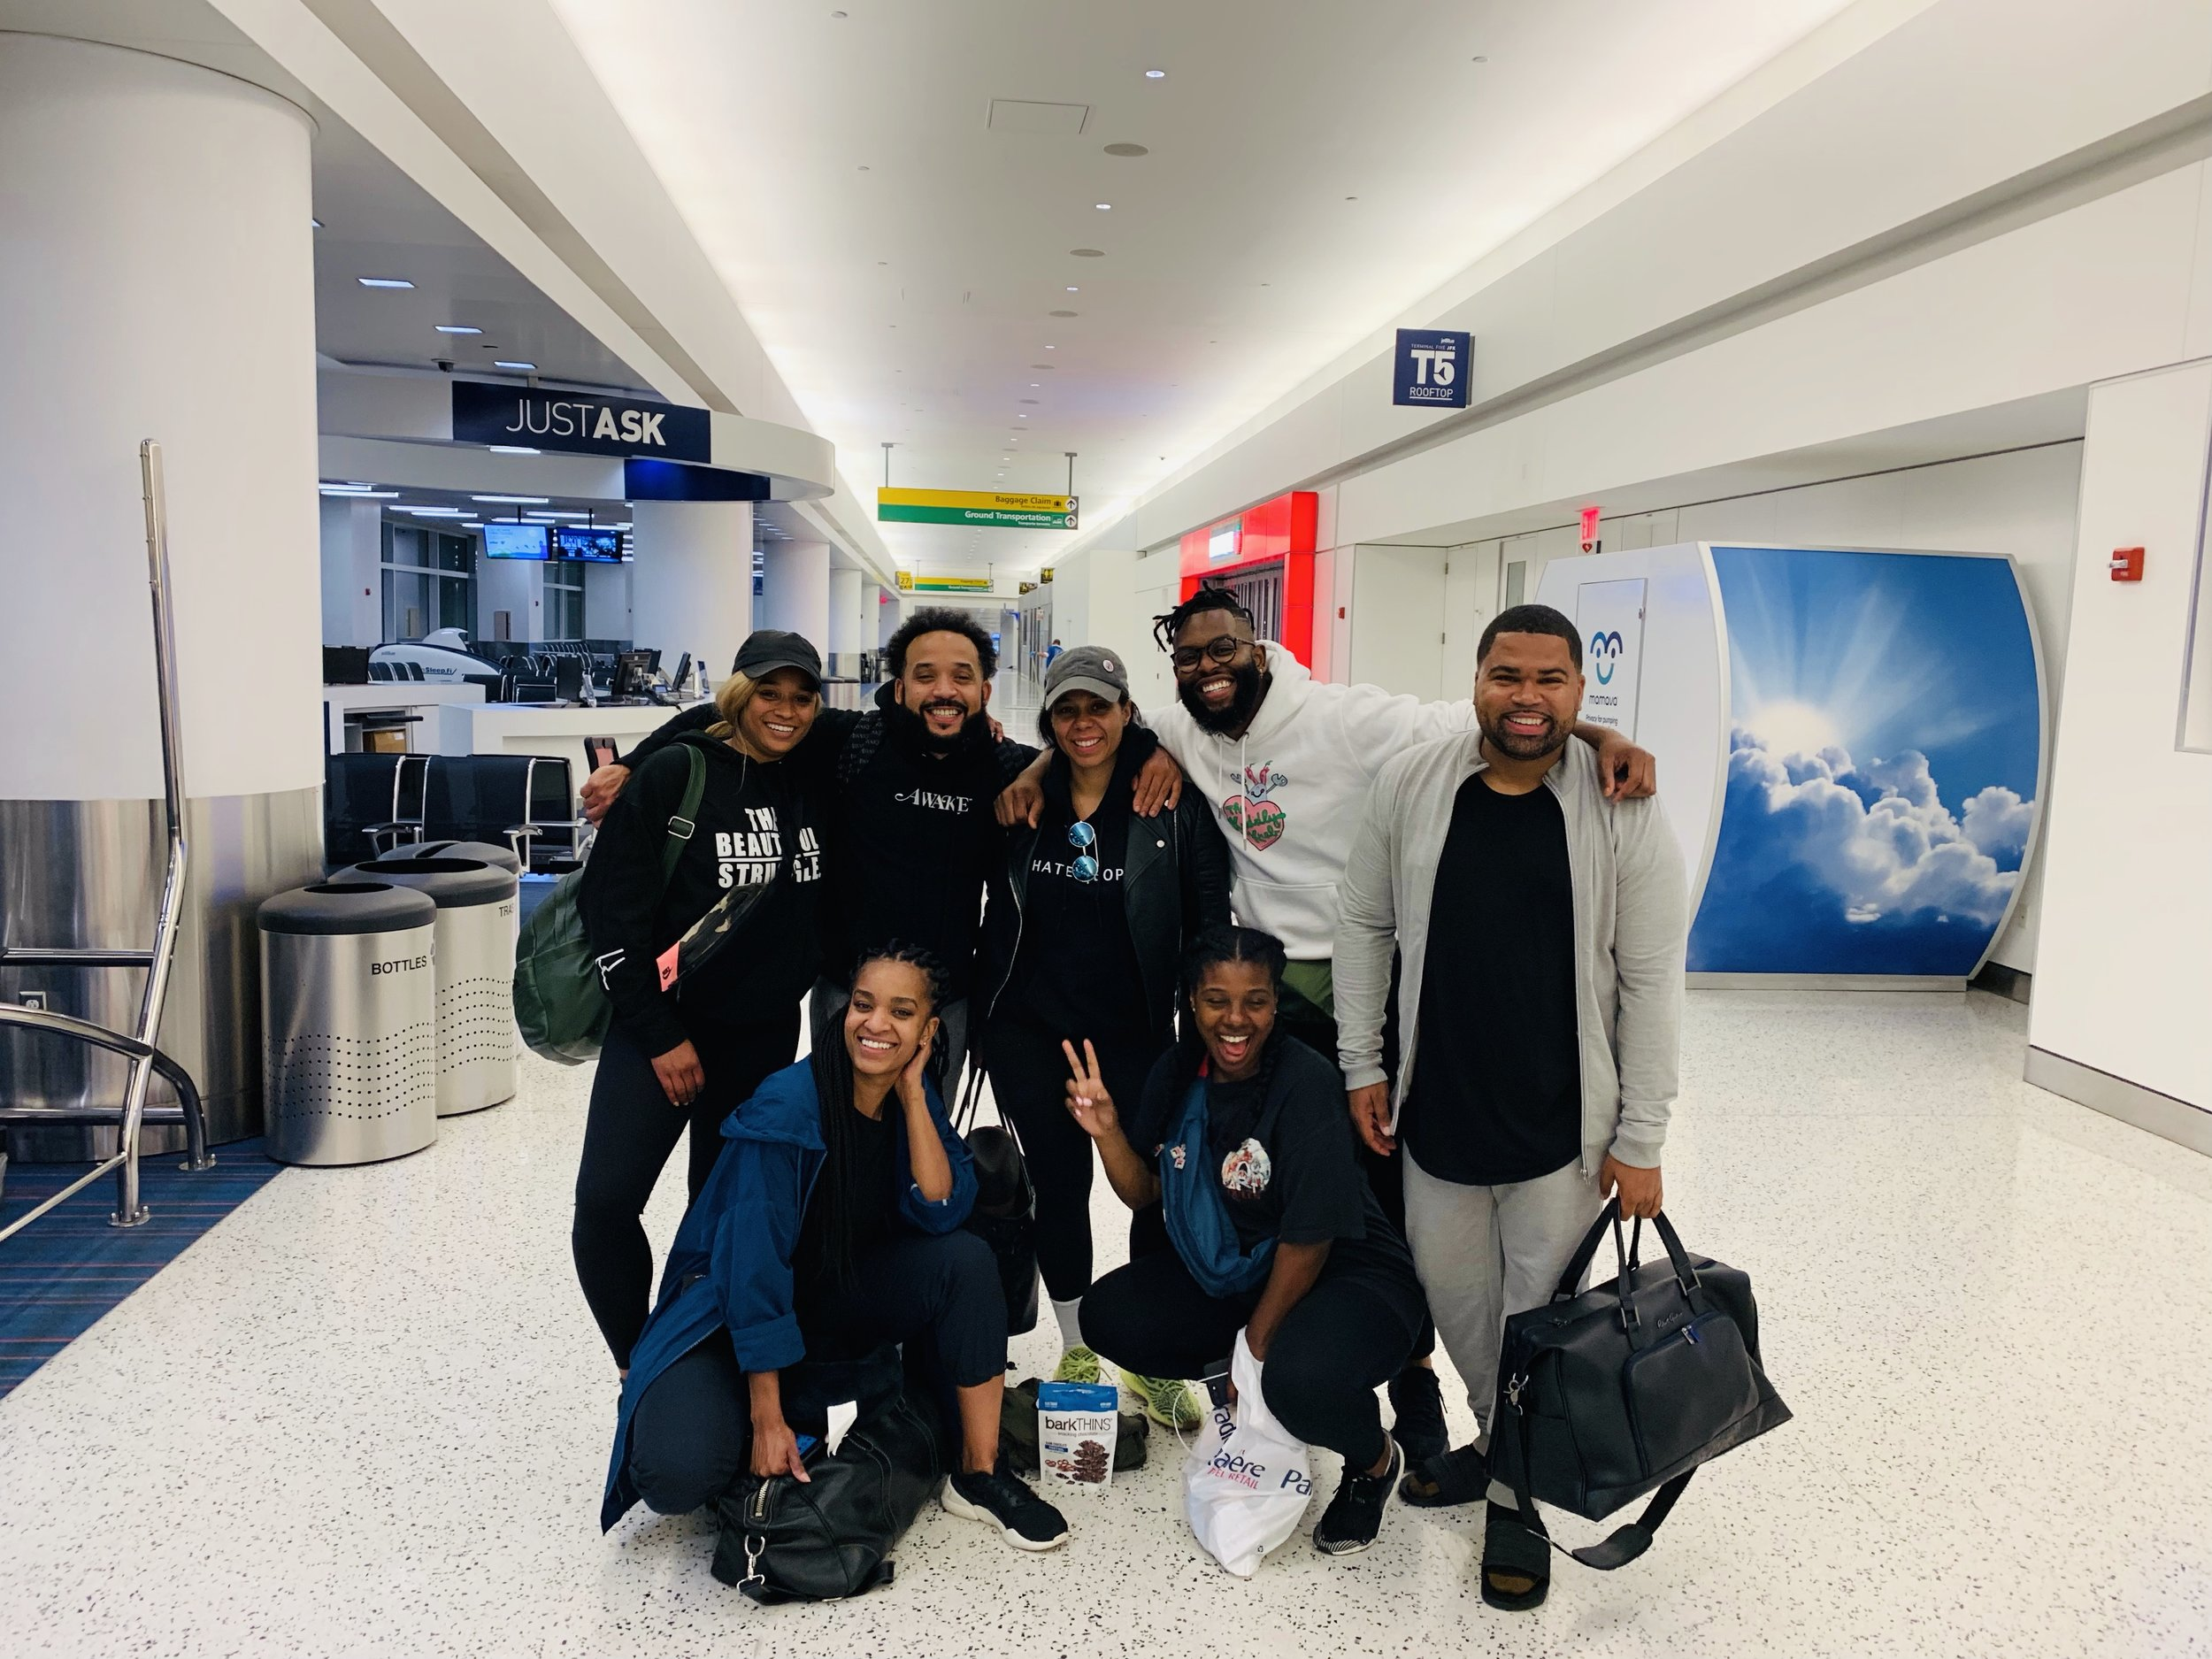 The group about to take off to Barcelona on a red eye flight from JFK.